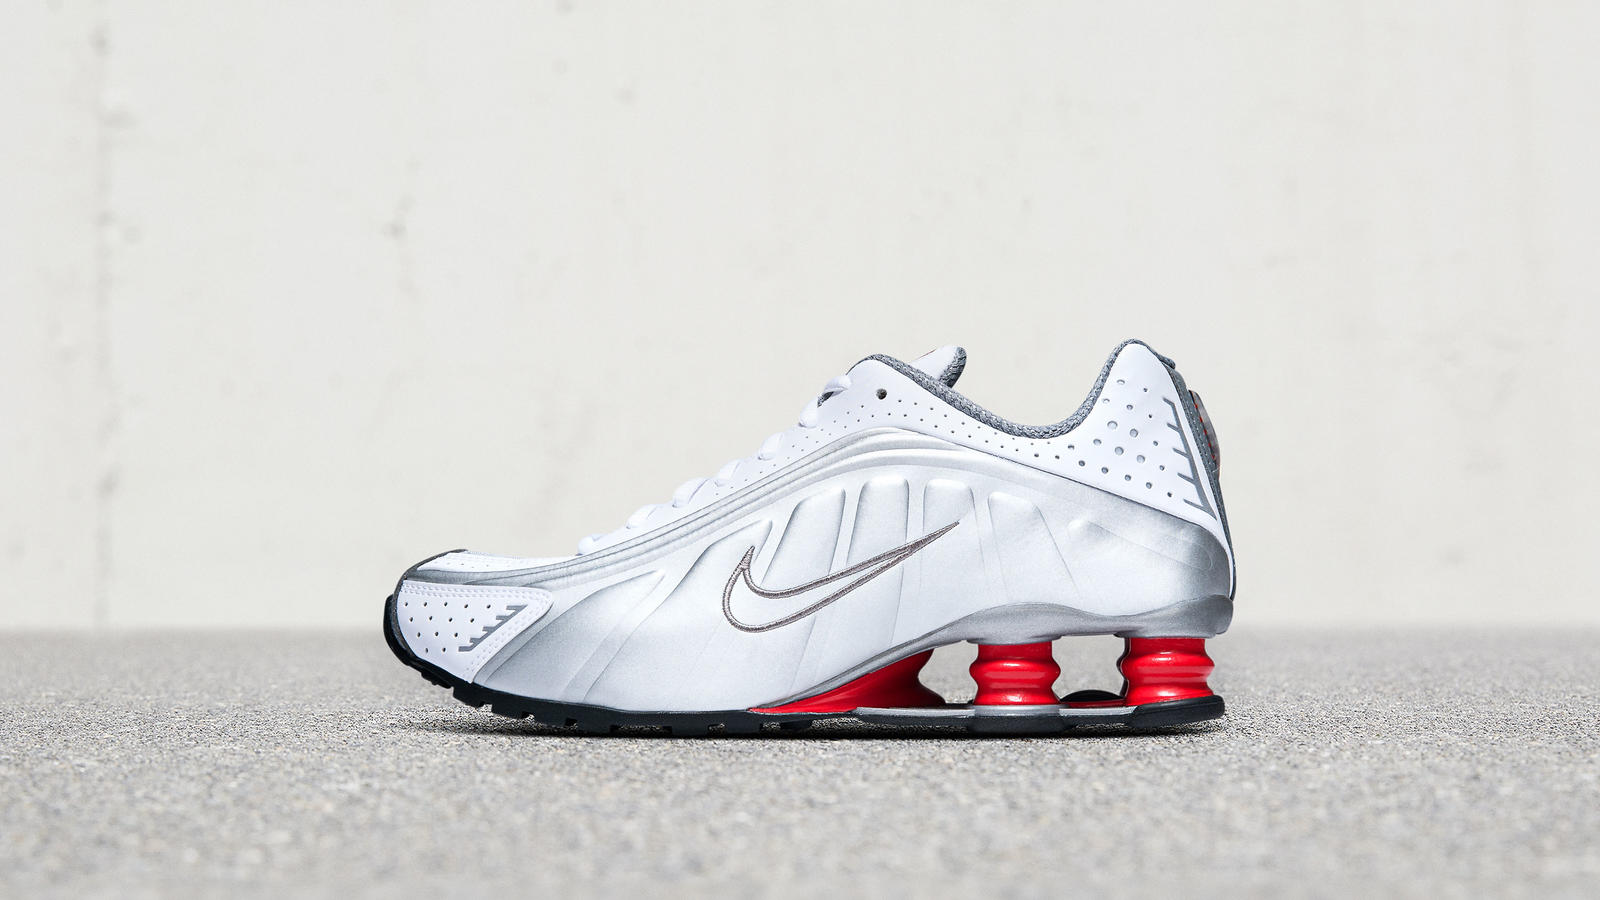 1dcf6af8e89 How to Get the Nike Shox R4 - Nike News